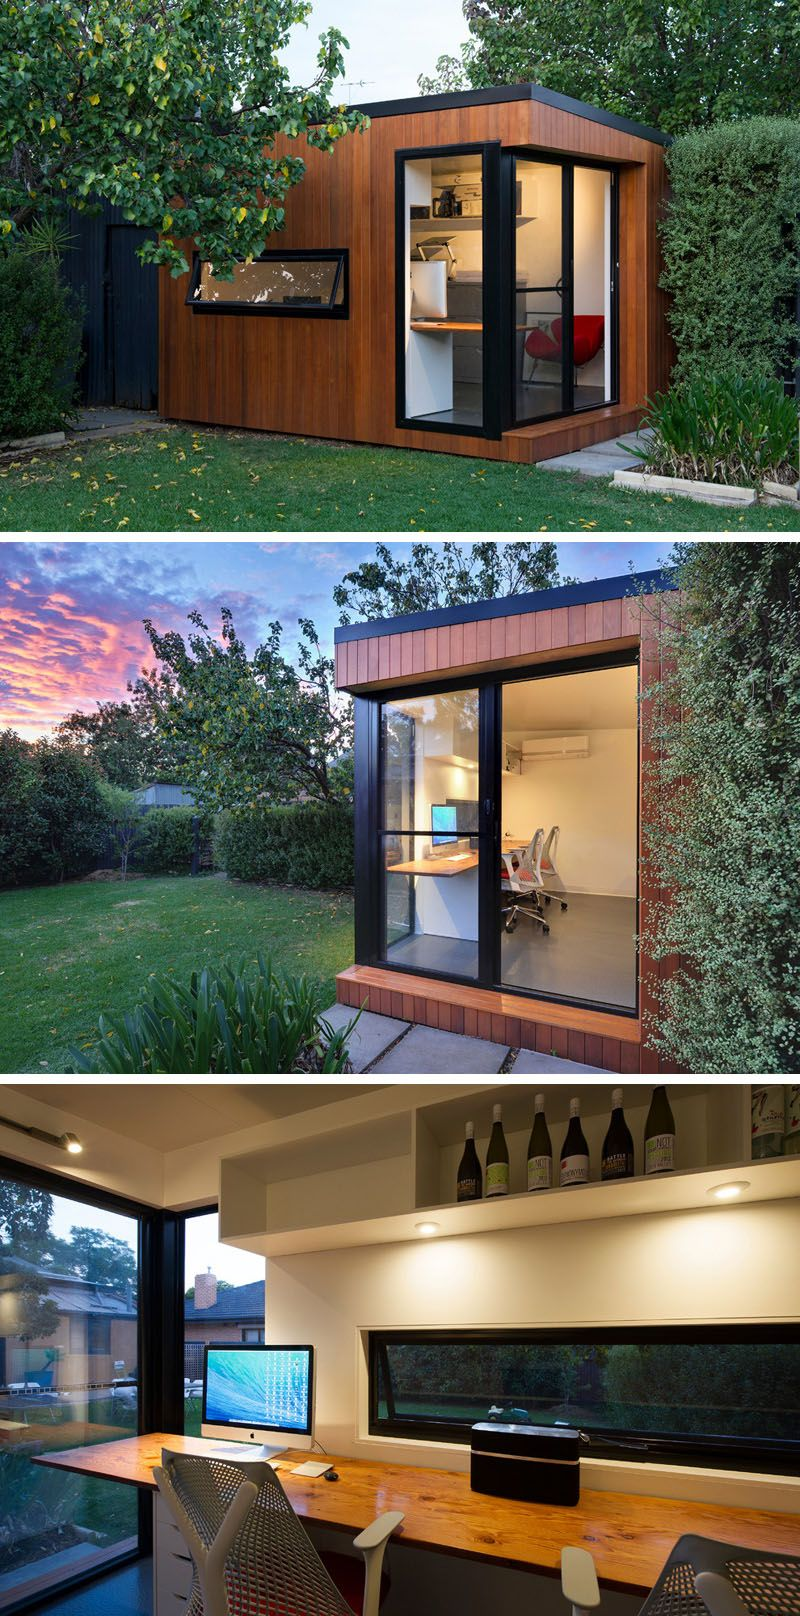 This Prefab Backyard Home Office Is Covered In Wood And Black Trim Surrounds The Windows Sliding Door